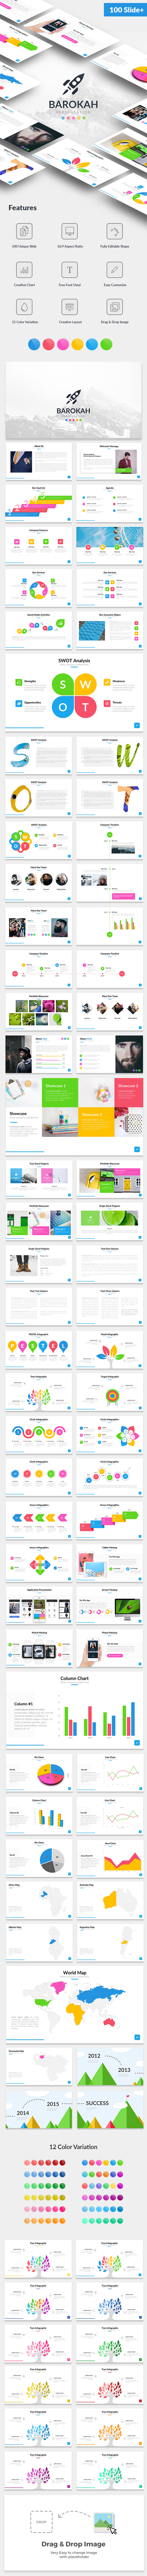 Barokah Multipurpose Keynote Template - Business Keynote Templates